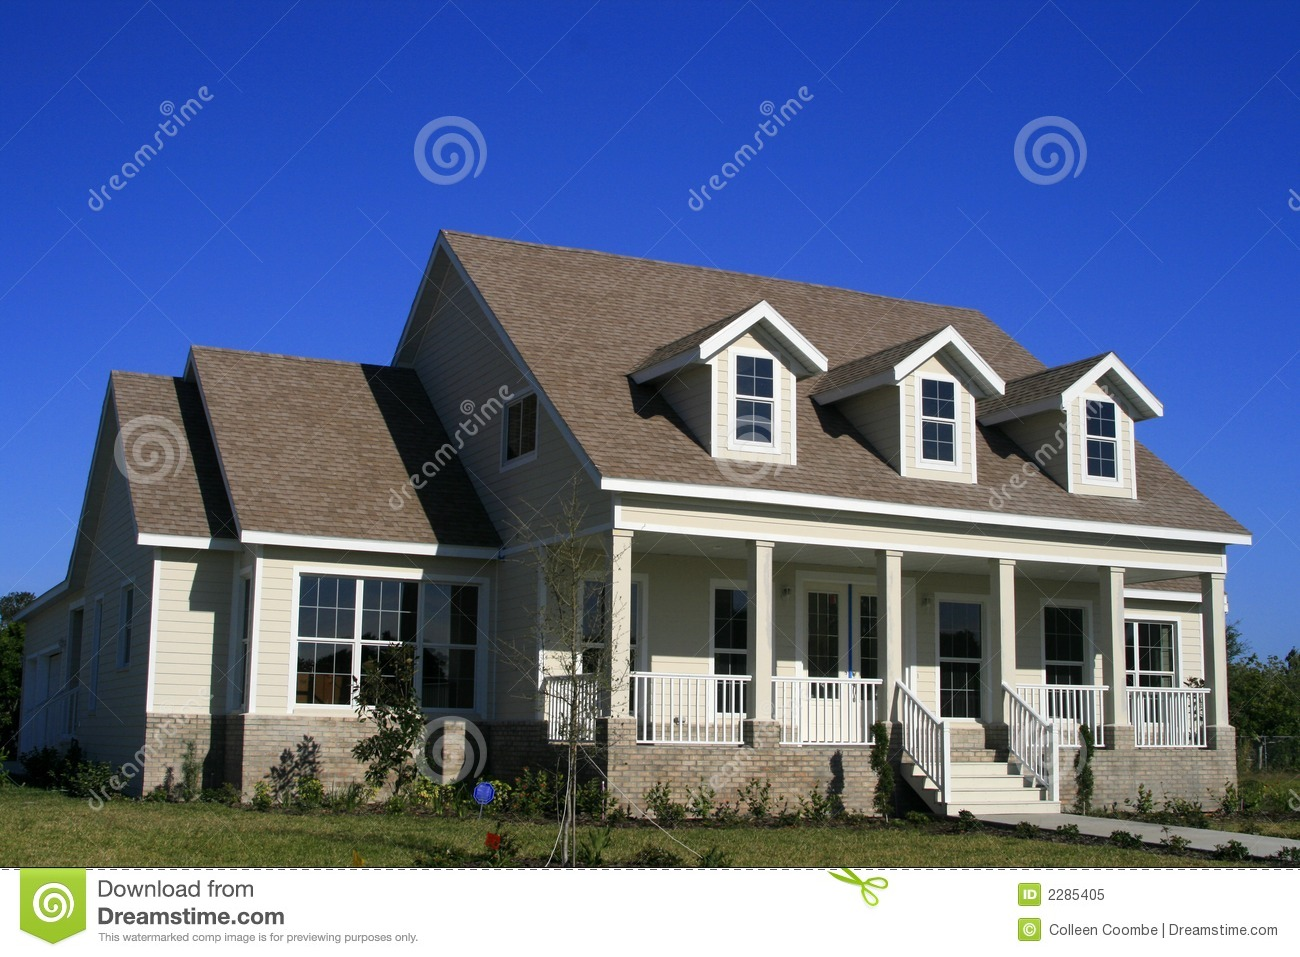 Country home american style royalty free stock photo image 2285405 - Home style american ...